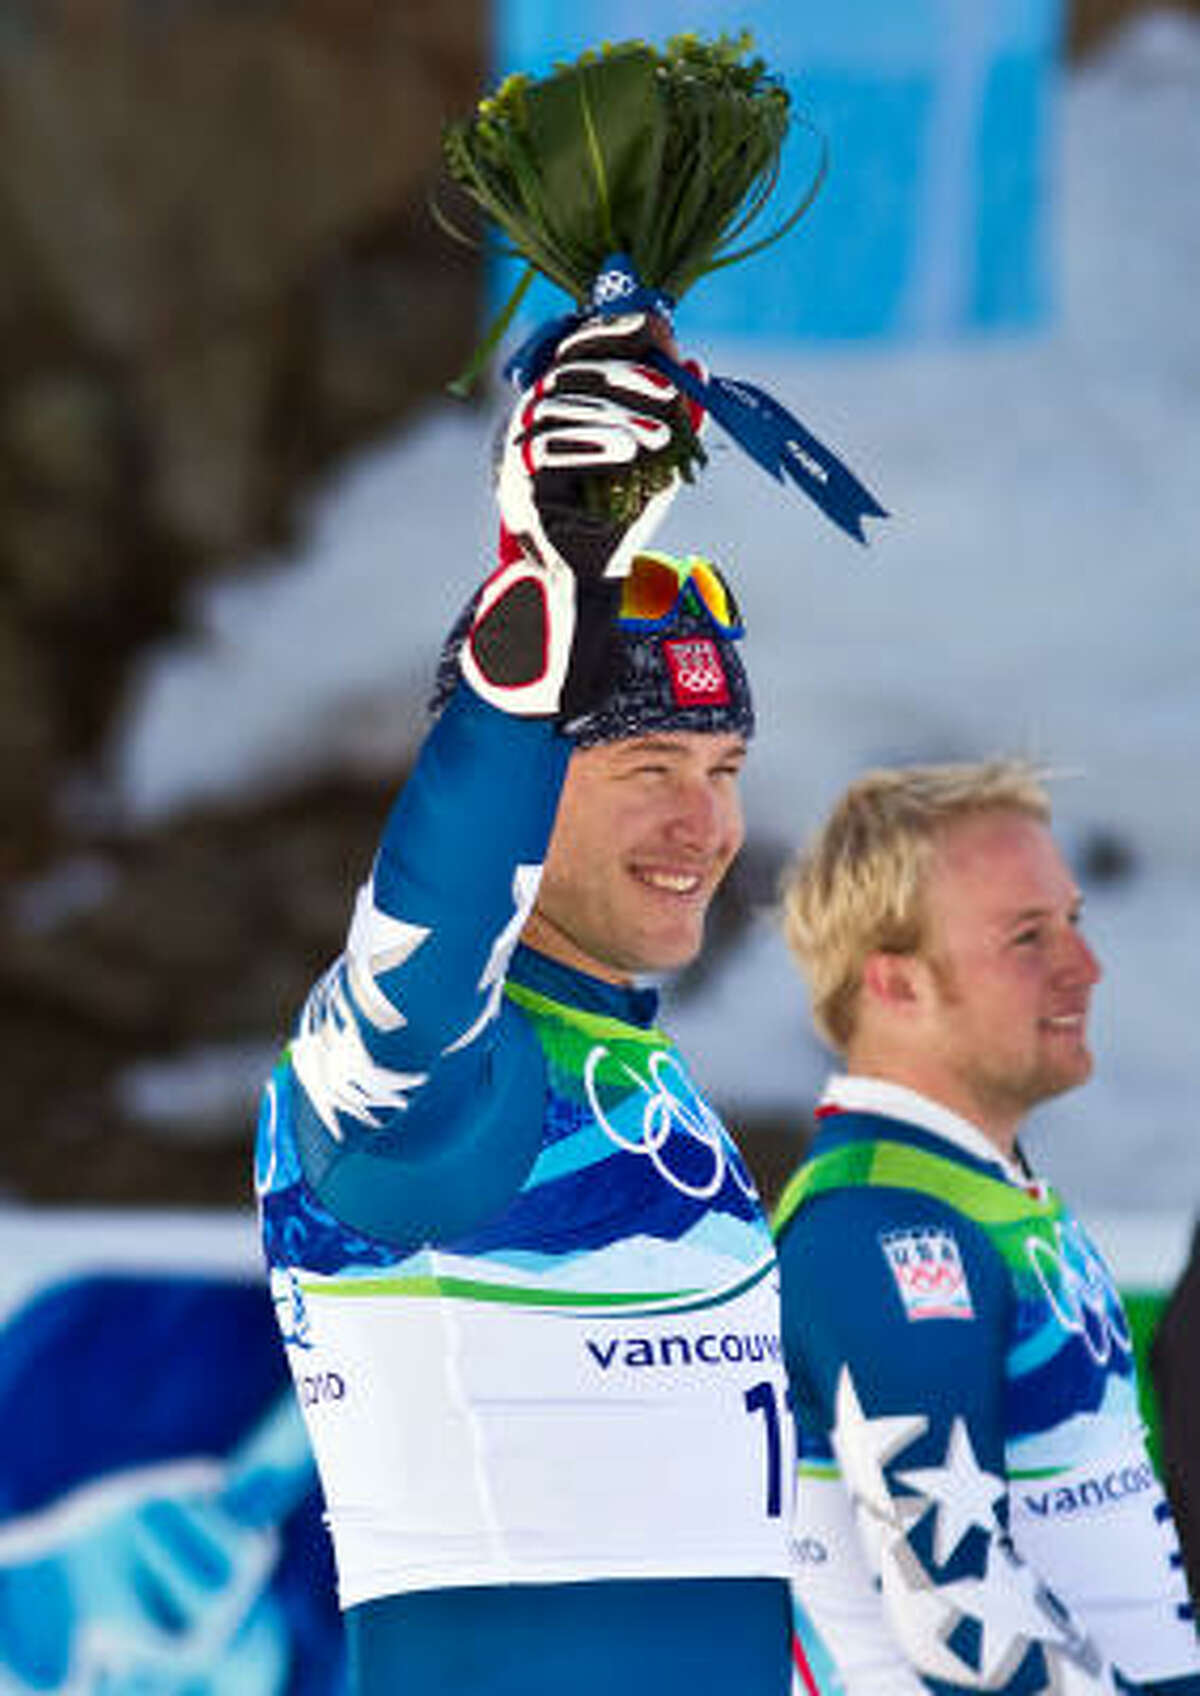 Bode Miller, left, and Andrew Weibrecht of the United States wave from the podium after winning the silver and bronze medals, respectively, in the mens' alpine skiing super-G Feb. 19.